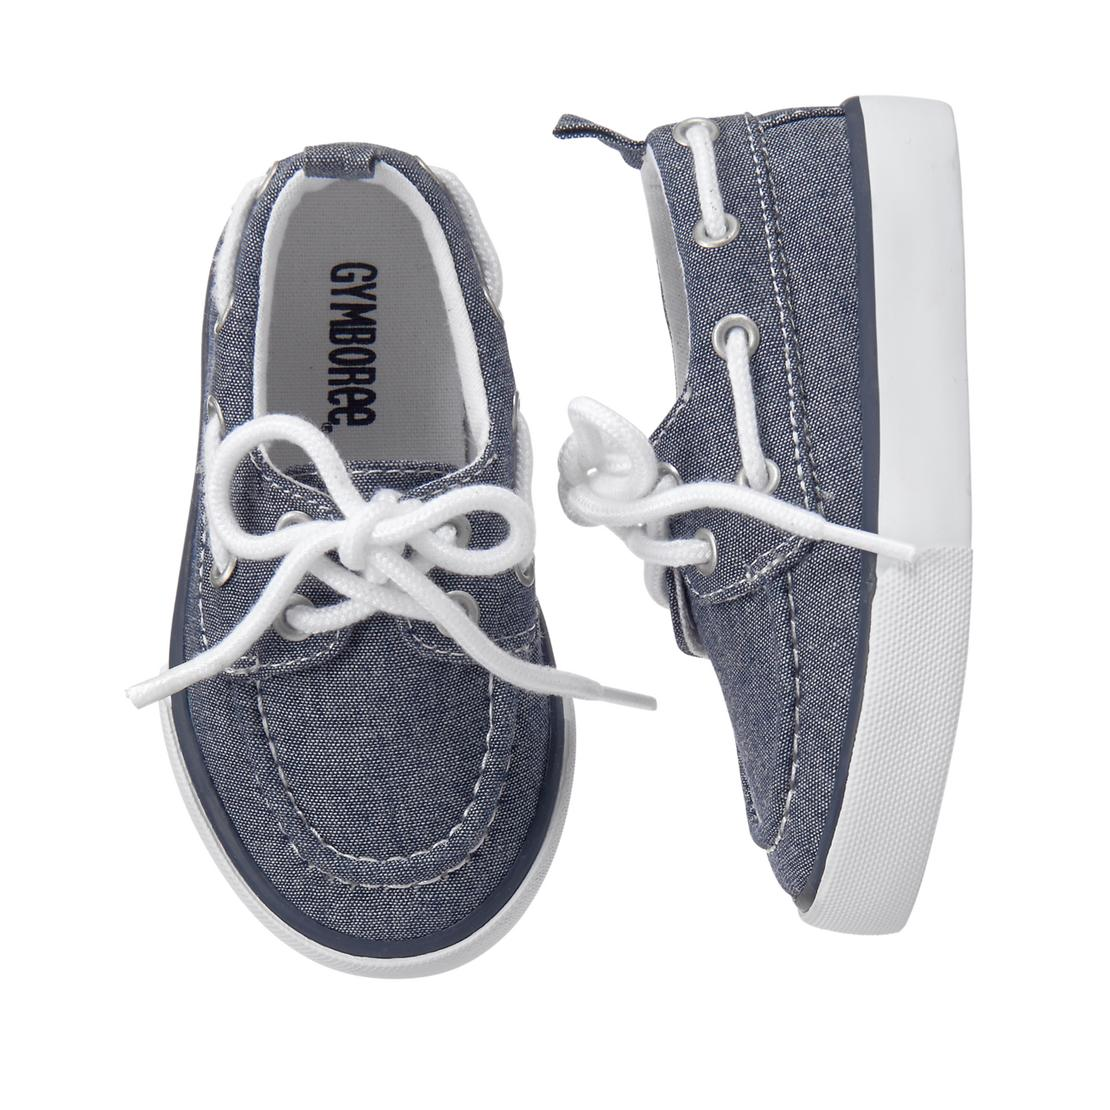 Chambray Boat Shoes - $29.95 Gymboree